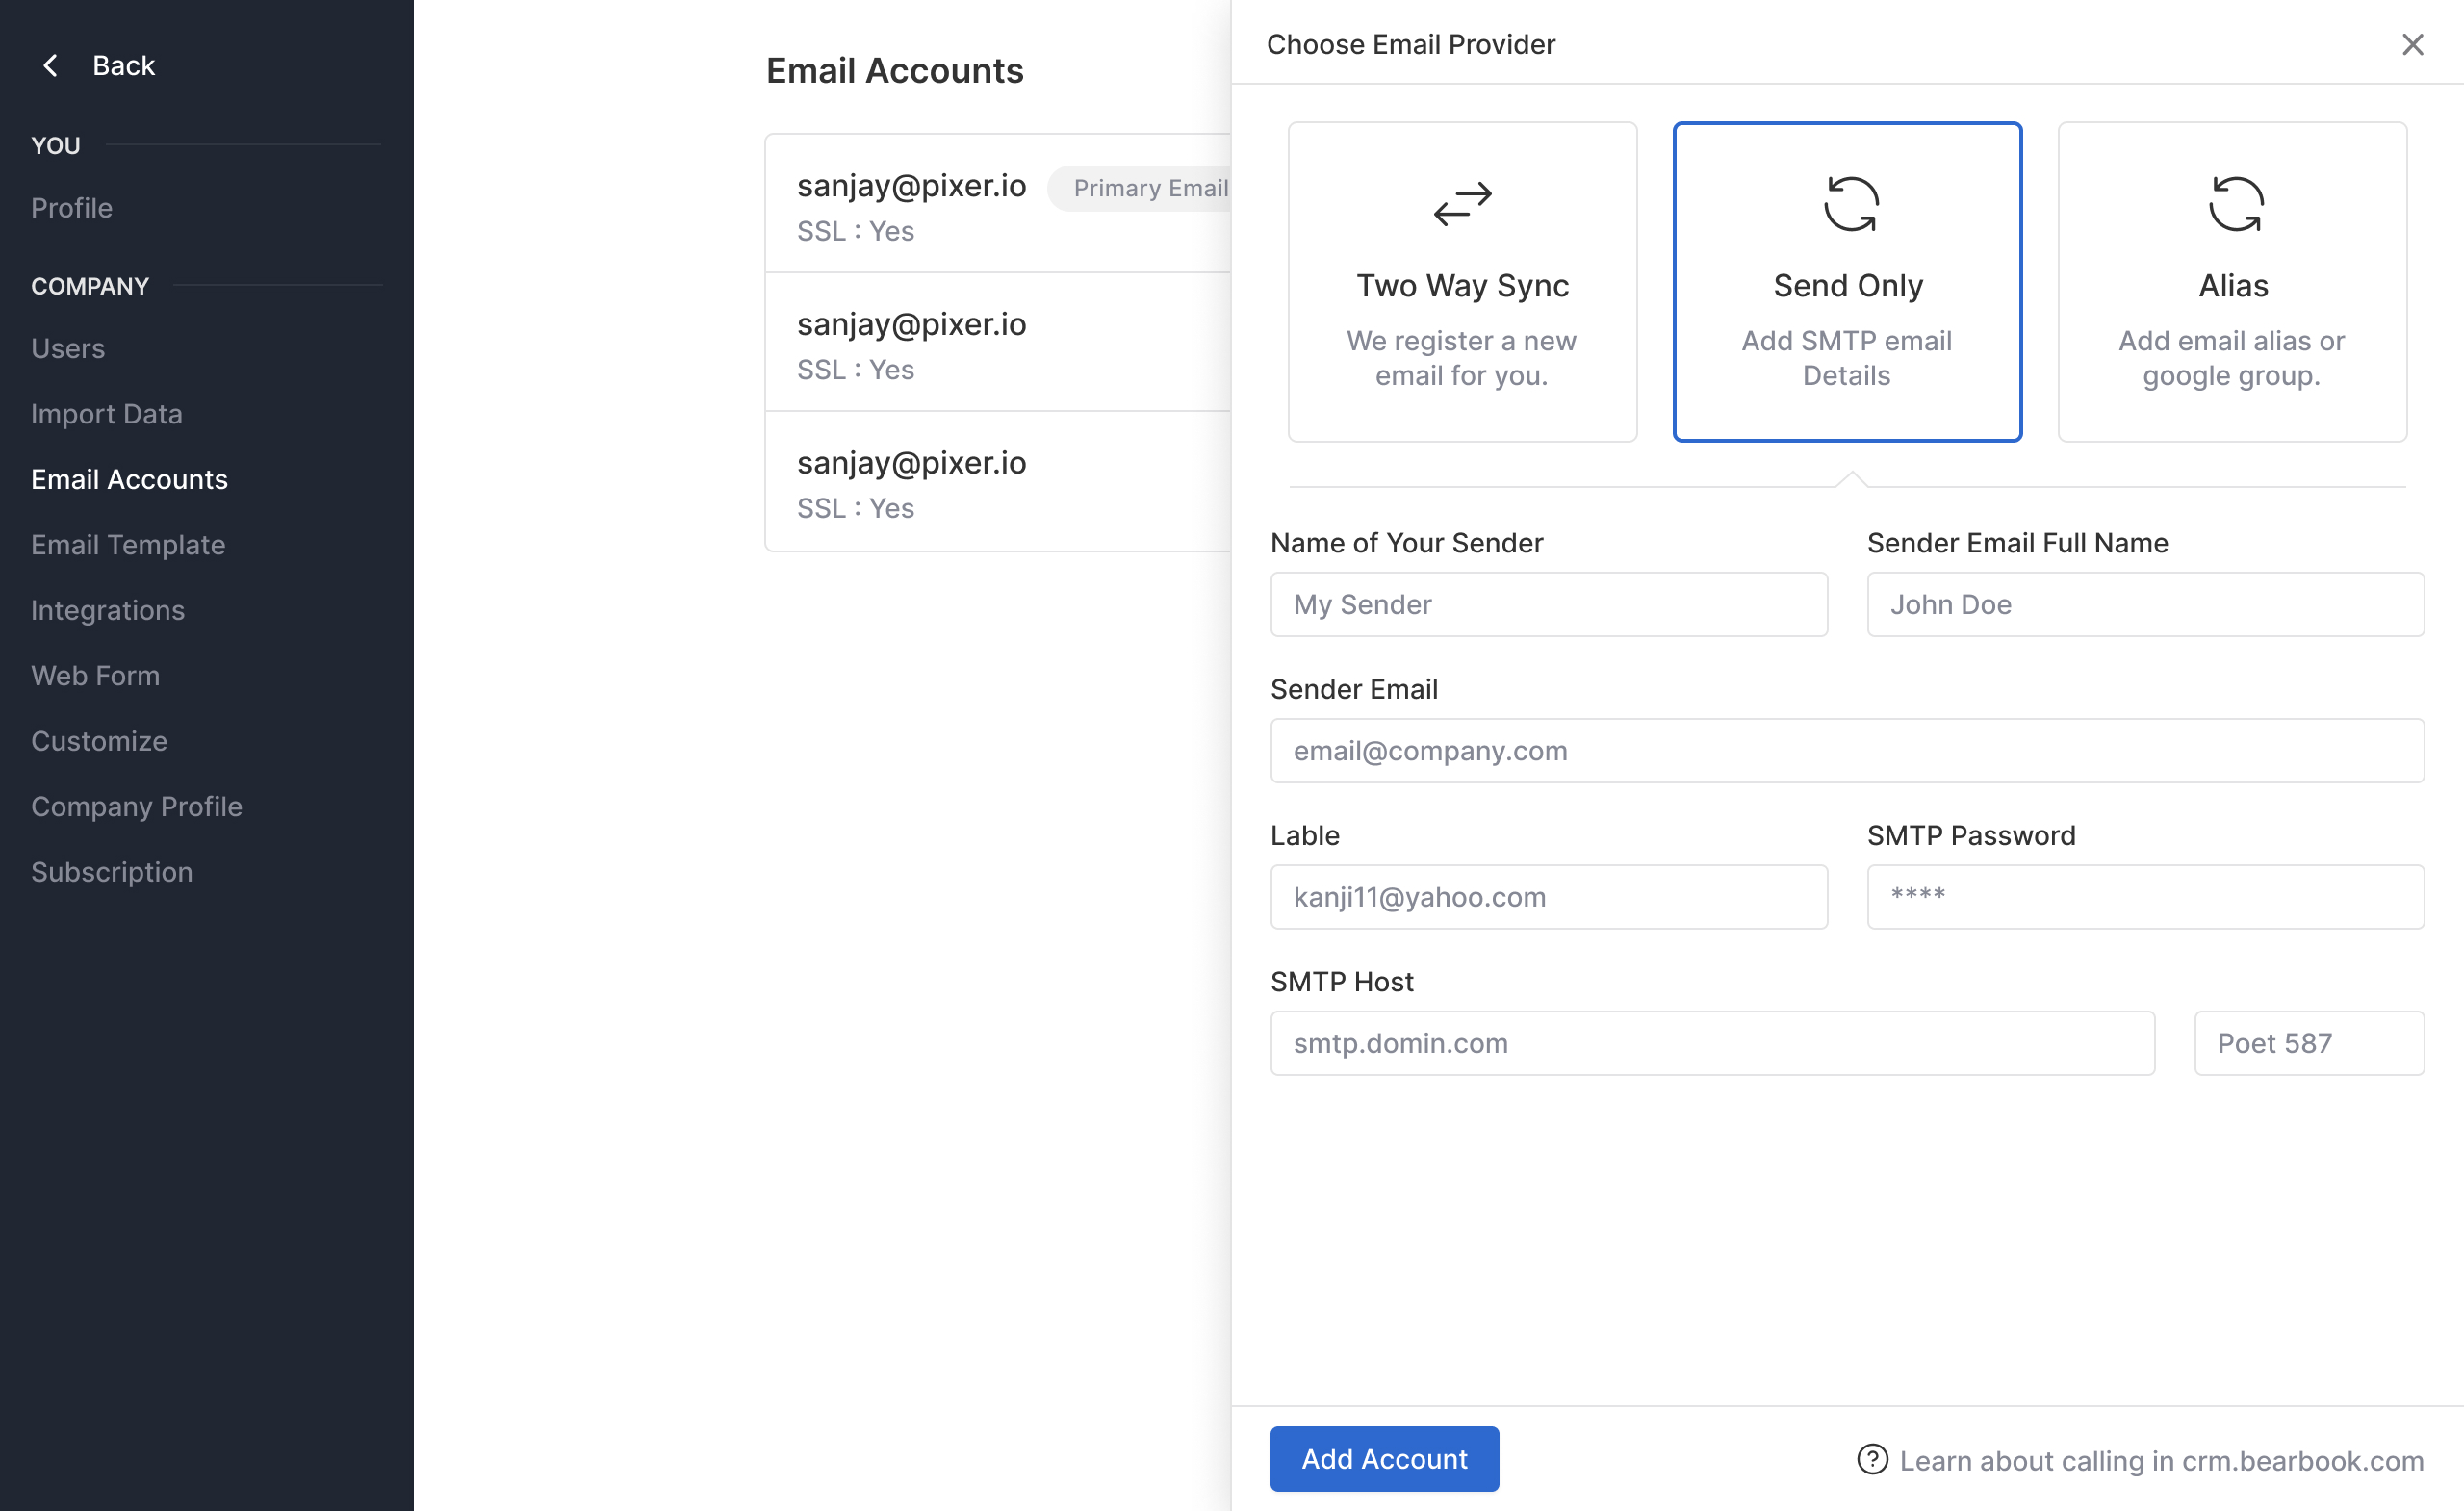 Add send-only email account